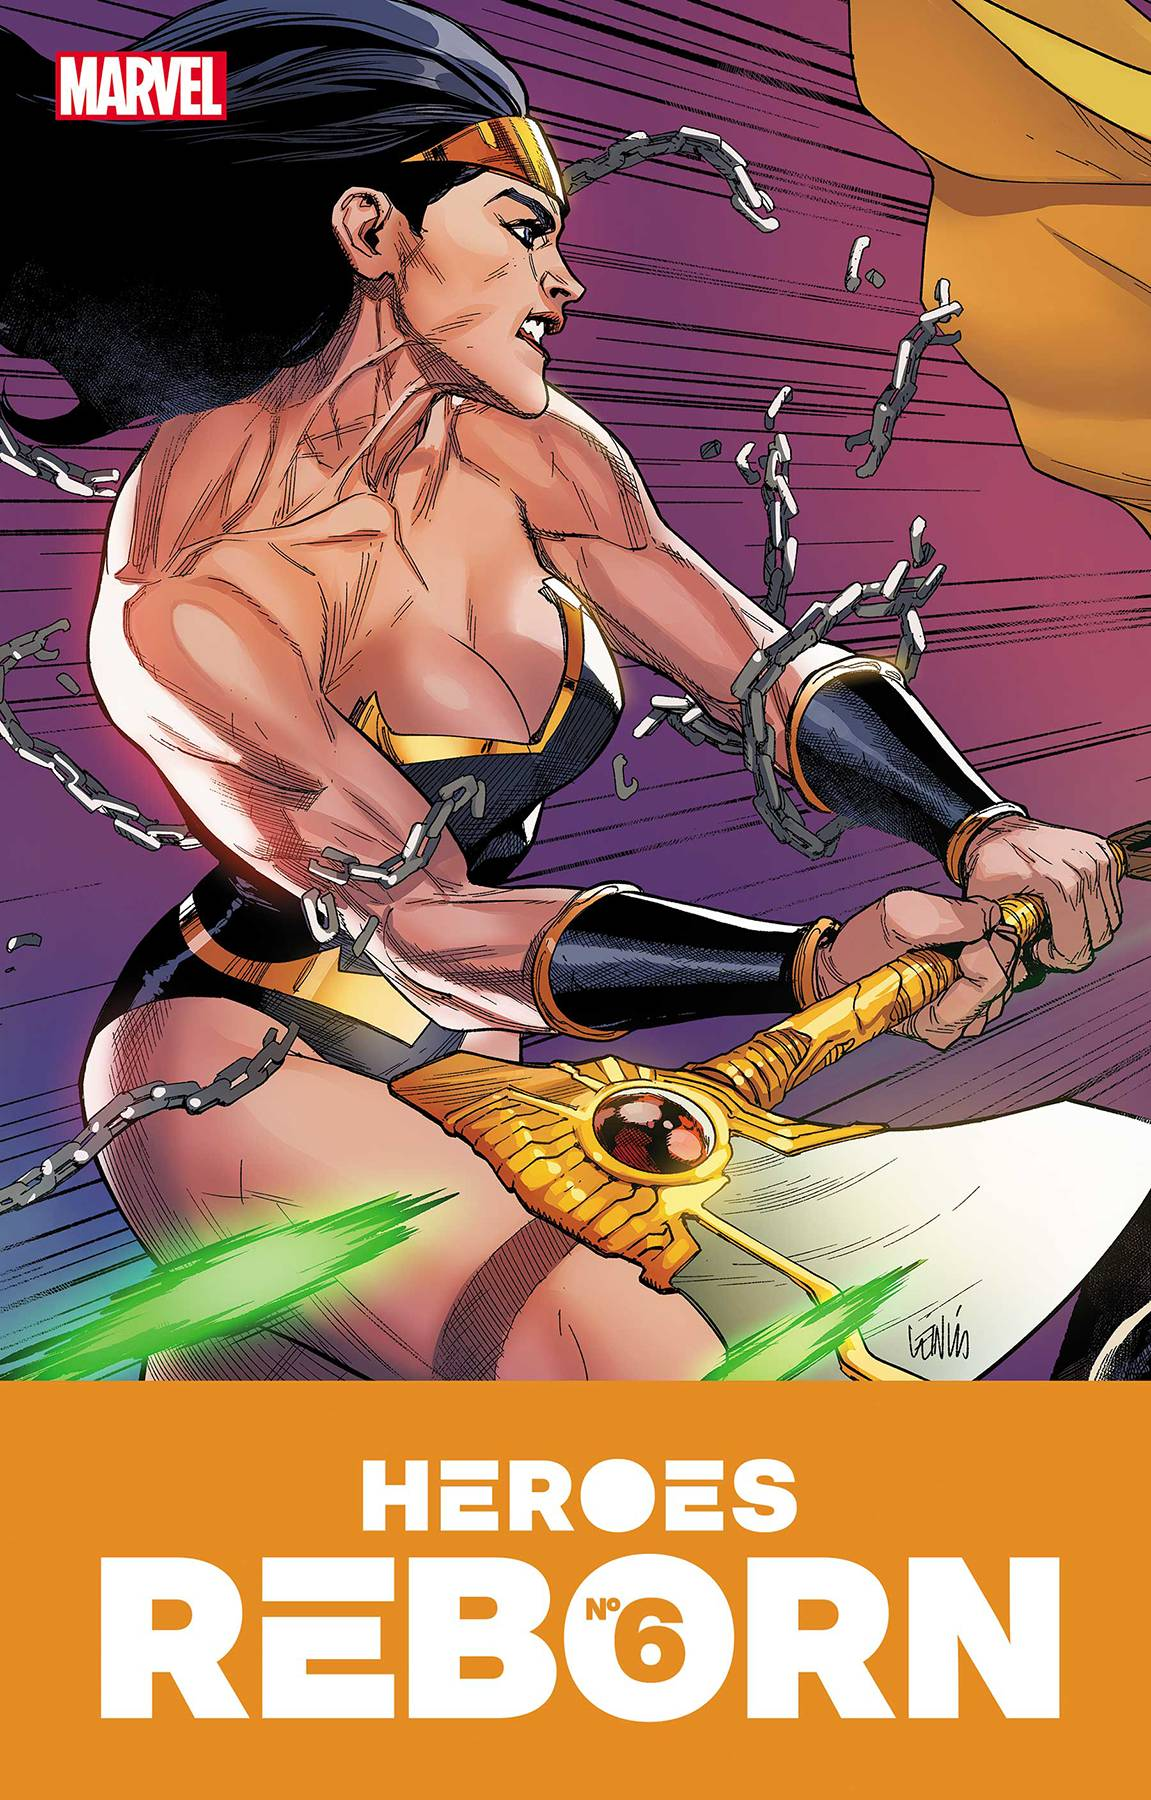 Heroes Reborn #6 (of 7) Cover A